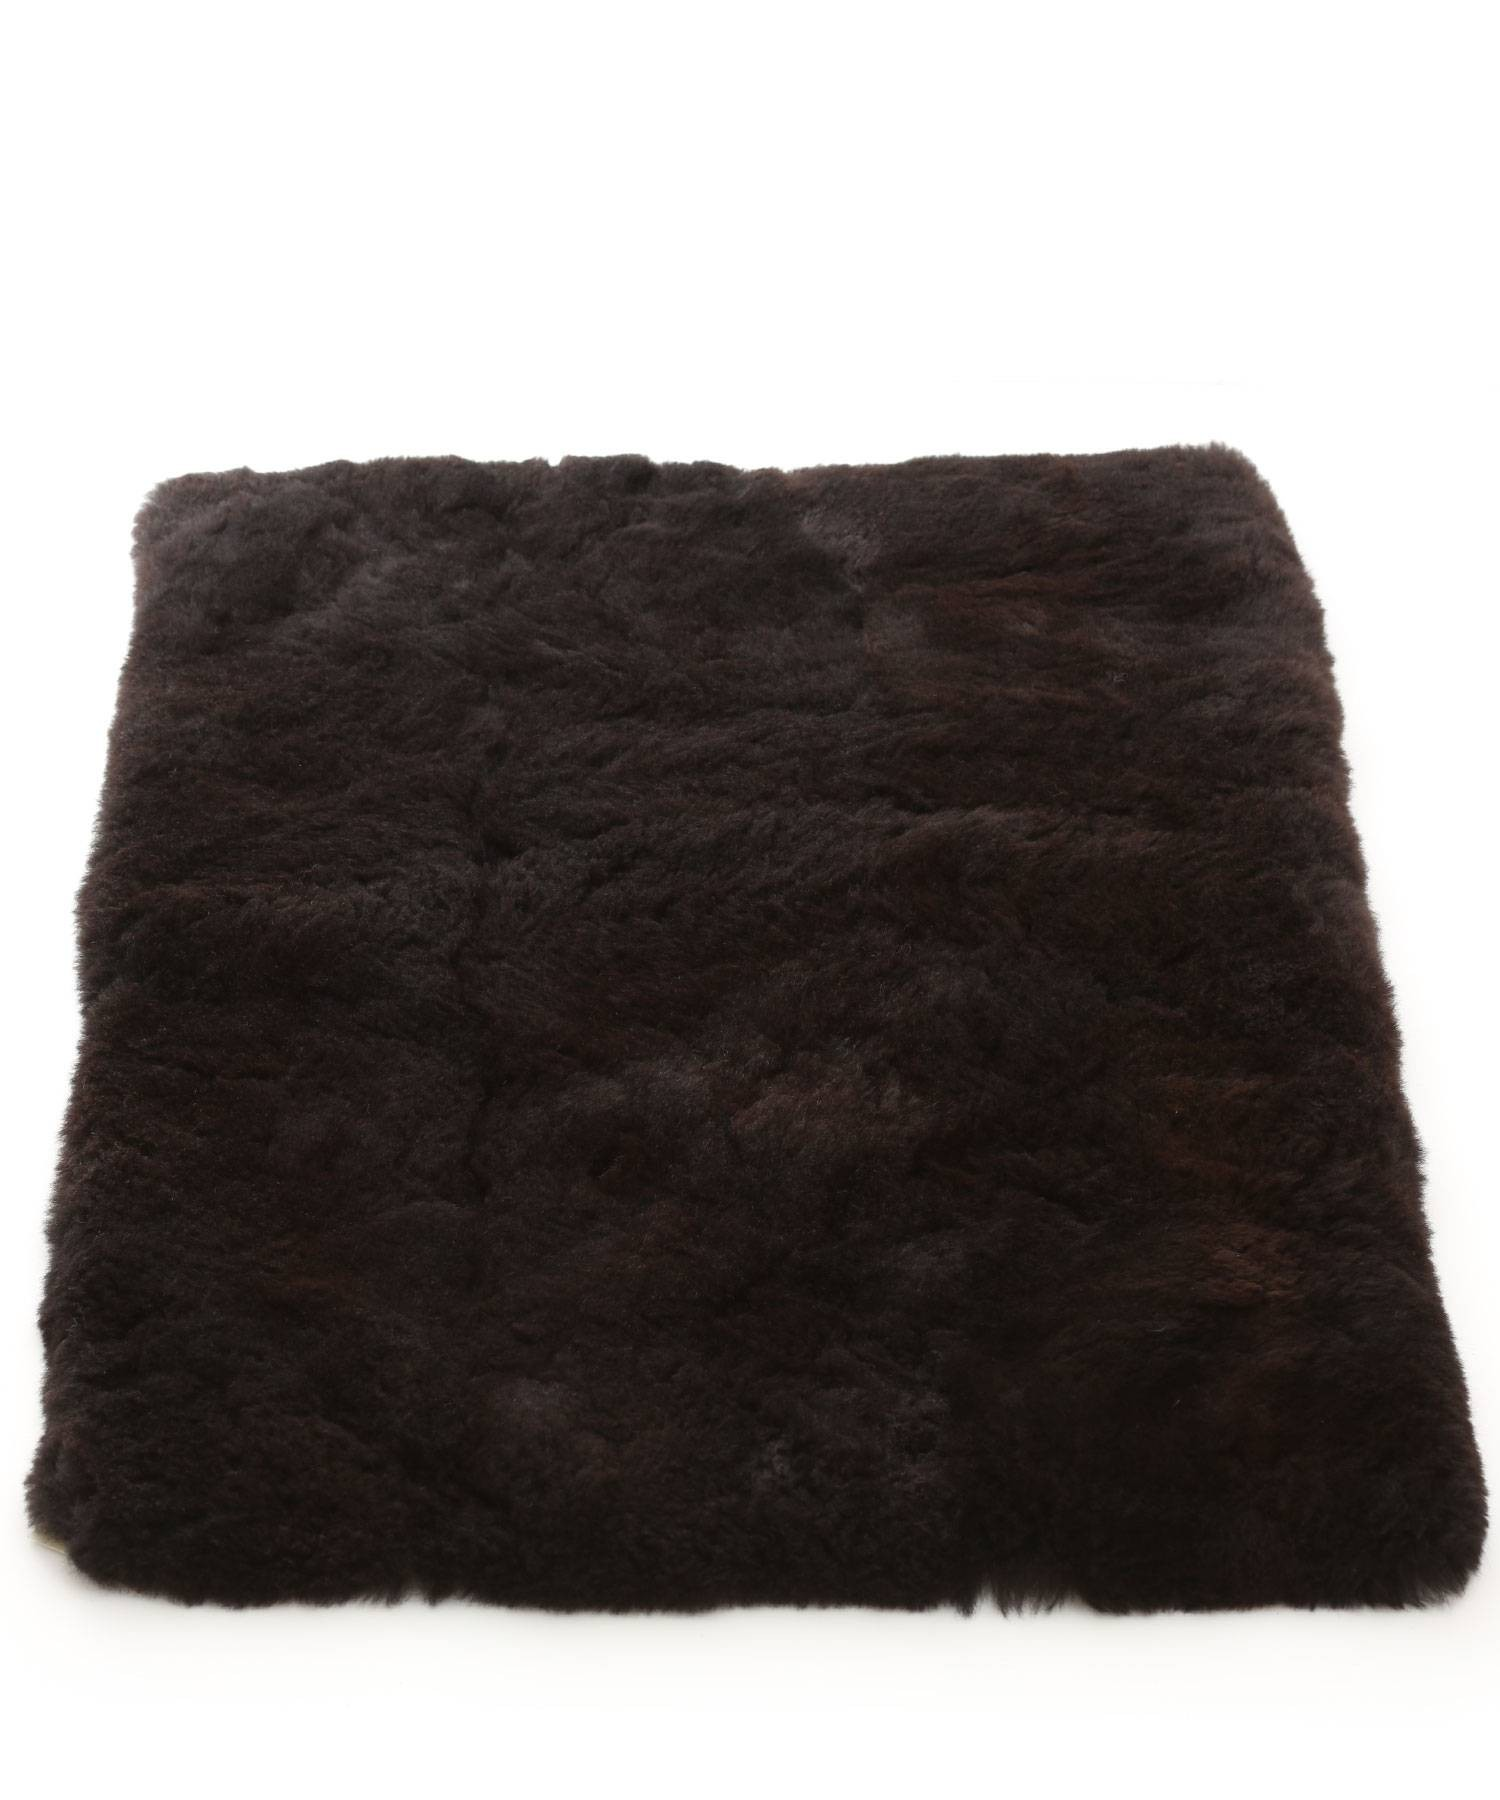 Alpaca Fur Rug Black In Alpaca Clothing Co Range